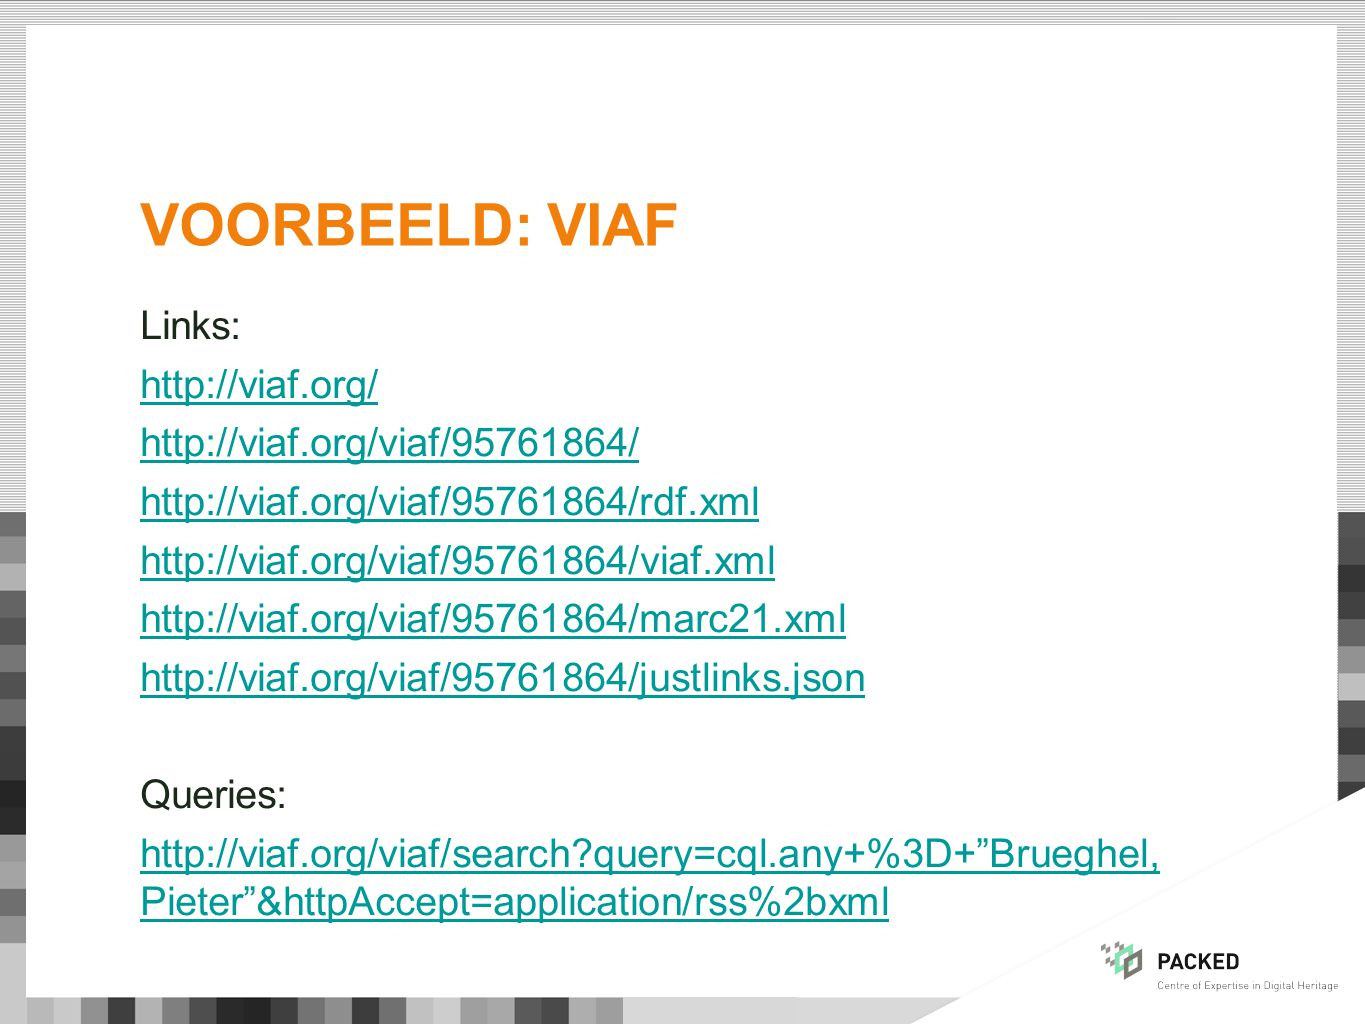 VOORBEELD: VIAF Links: http://viaf.org/ http://viaf.org/viaf/95761864/ http://viaf.org/viaf/95761864/rdf.xml http://viaf.org/viaf/95761864/viaf.xml http://viaf.org/viaf/95761864/marc21.xml http://viaf.org/viaf/95761864/justlinks.json Queries: http://viaf.org/viaf/search query=cql.any+%3D+ Brueghel, Pieter &httpAccept=application/rss%2bxml